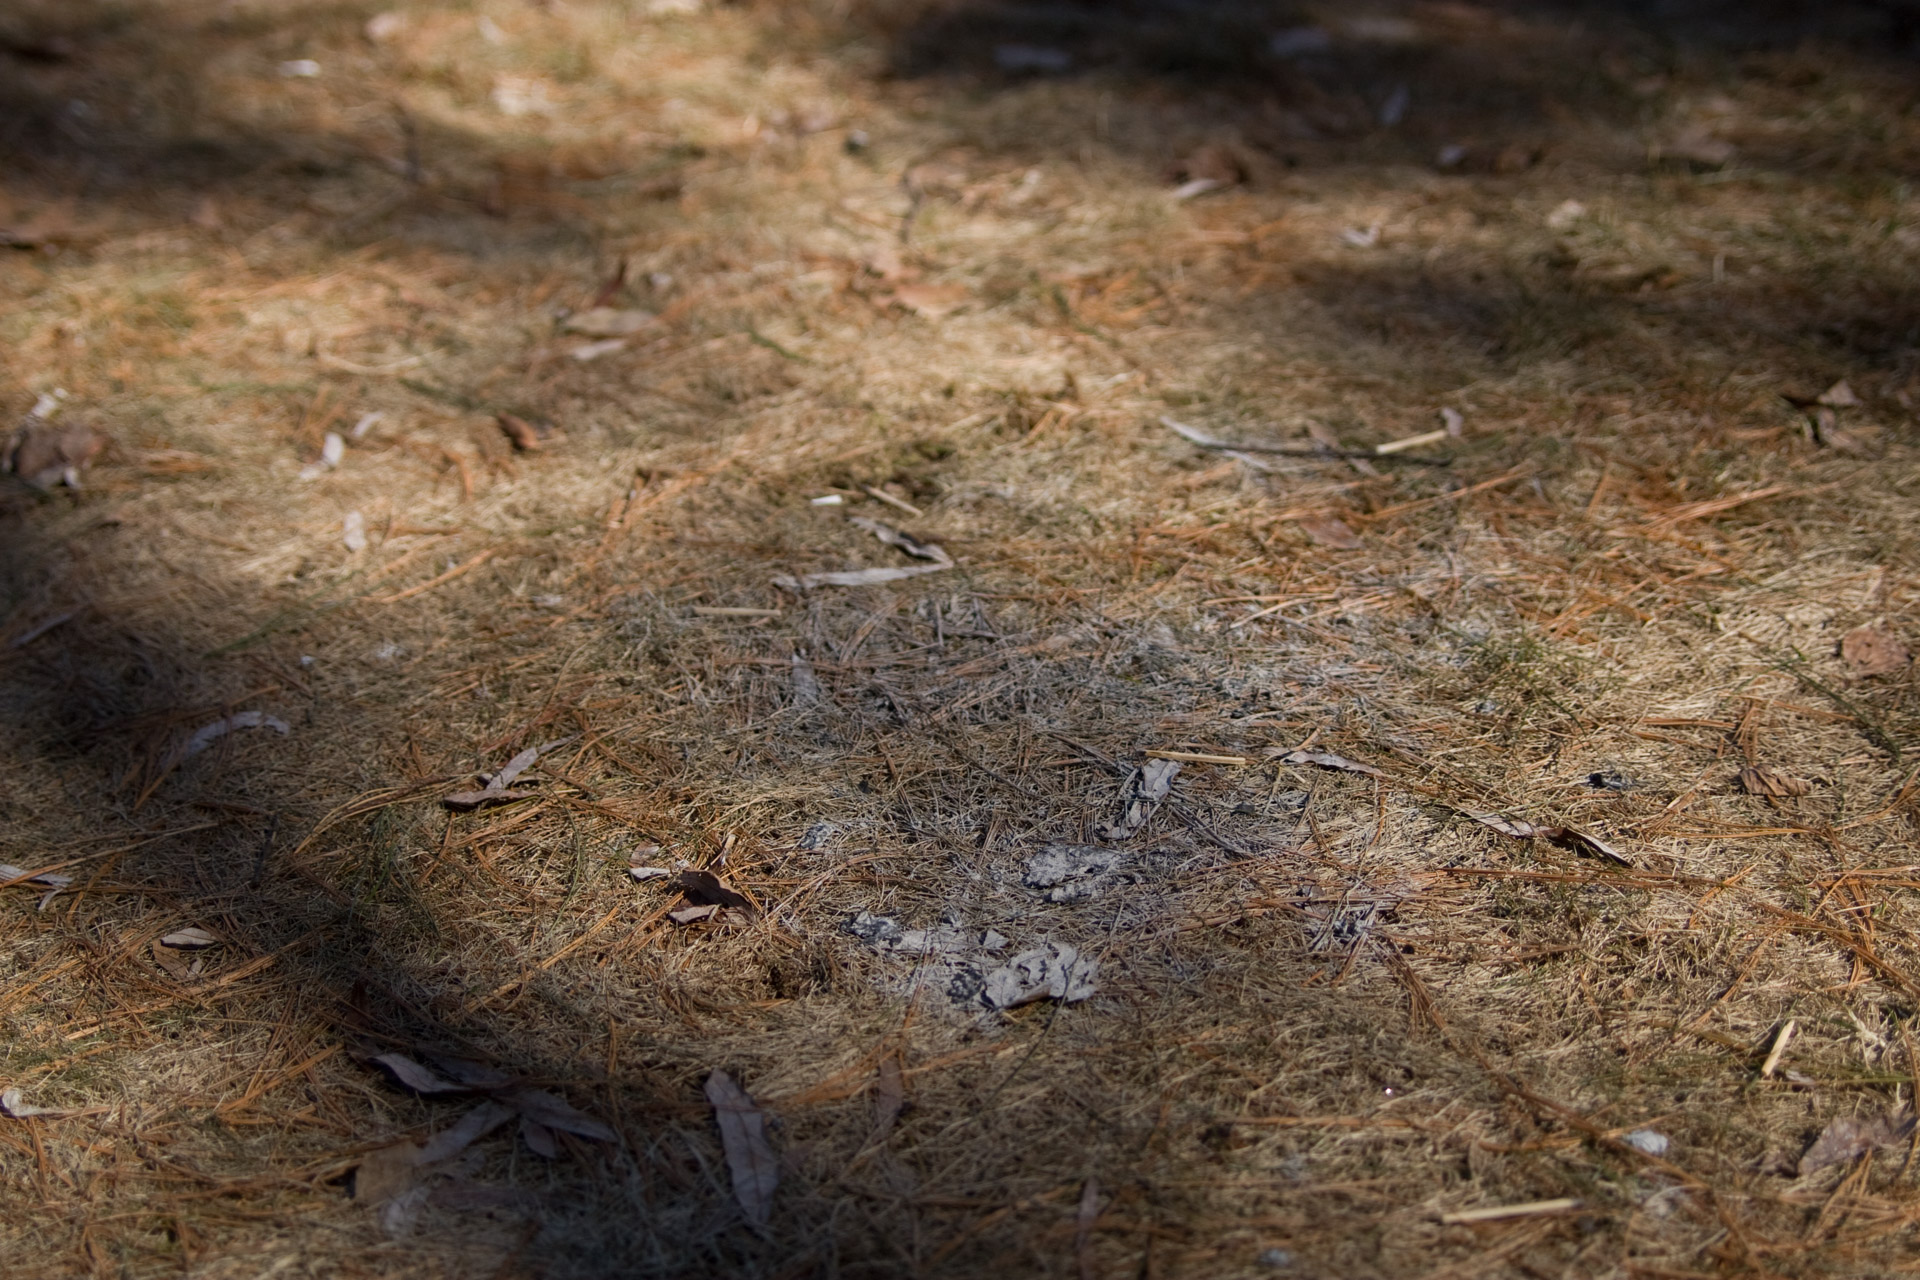 Ash spot on the ground covered with dried pine leaves.